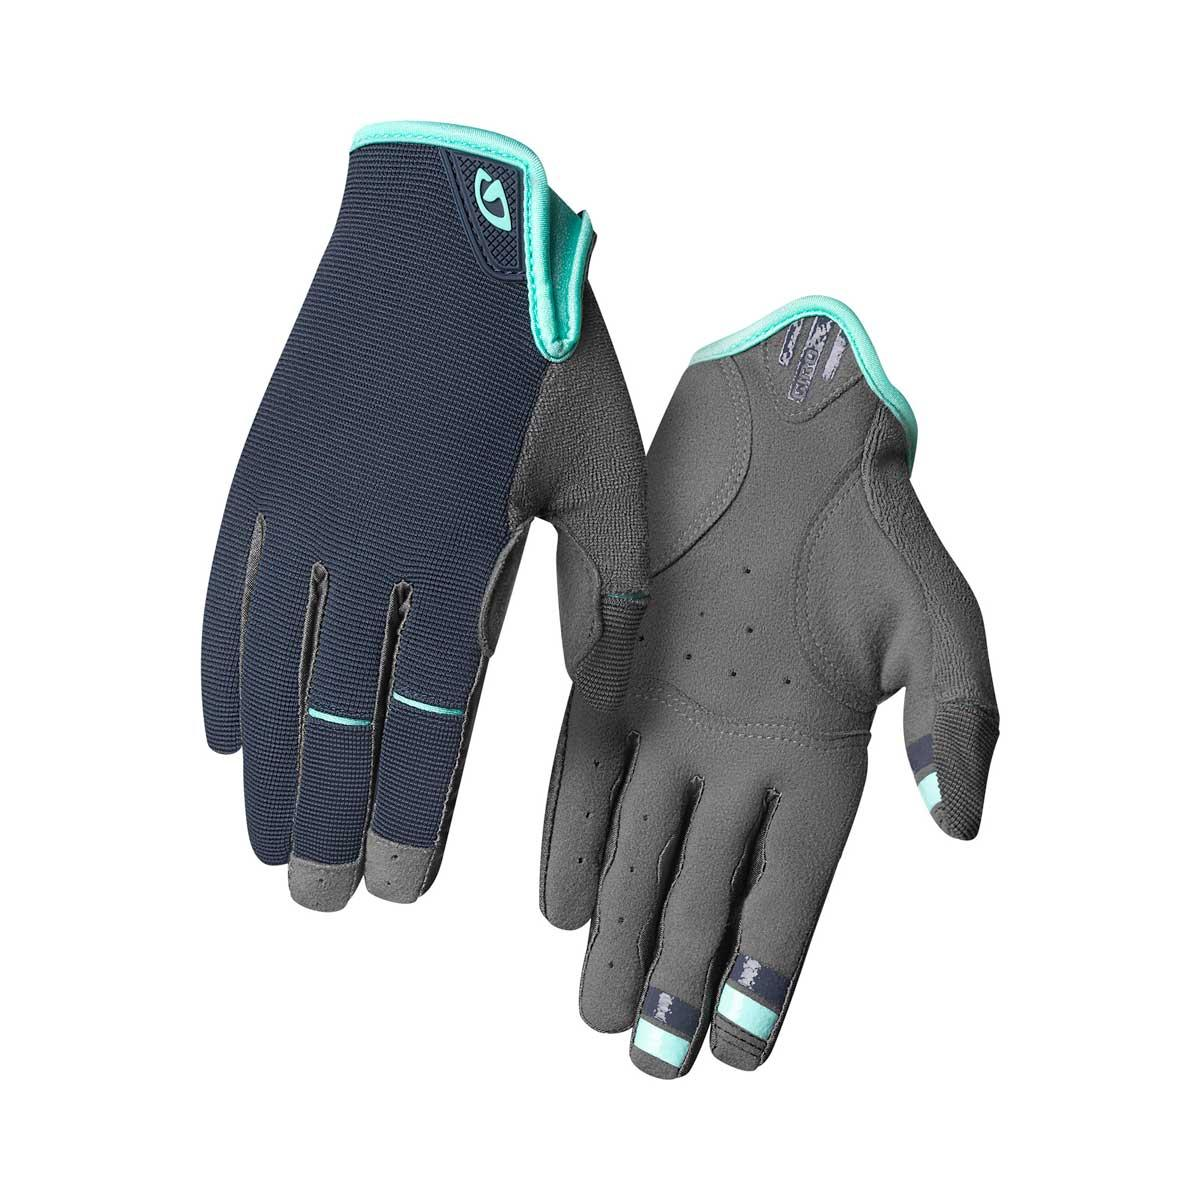 Giro women's La DND Glove in Midnight Blue and Cool Breeze main view